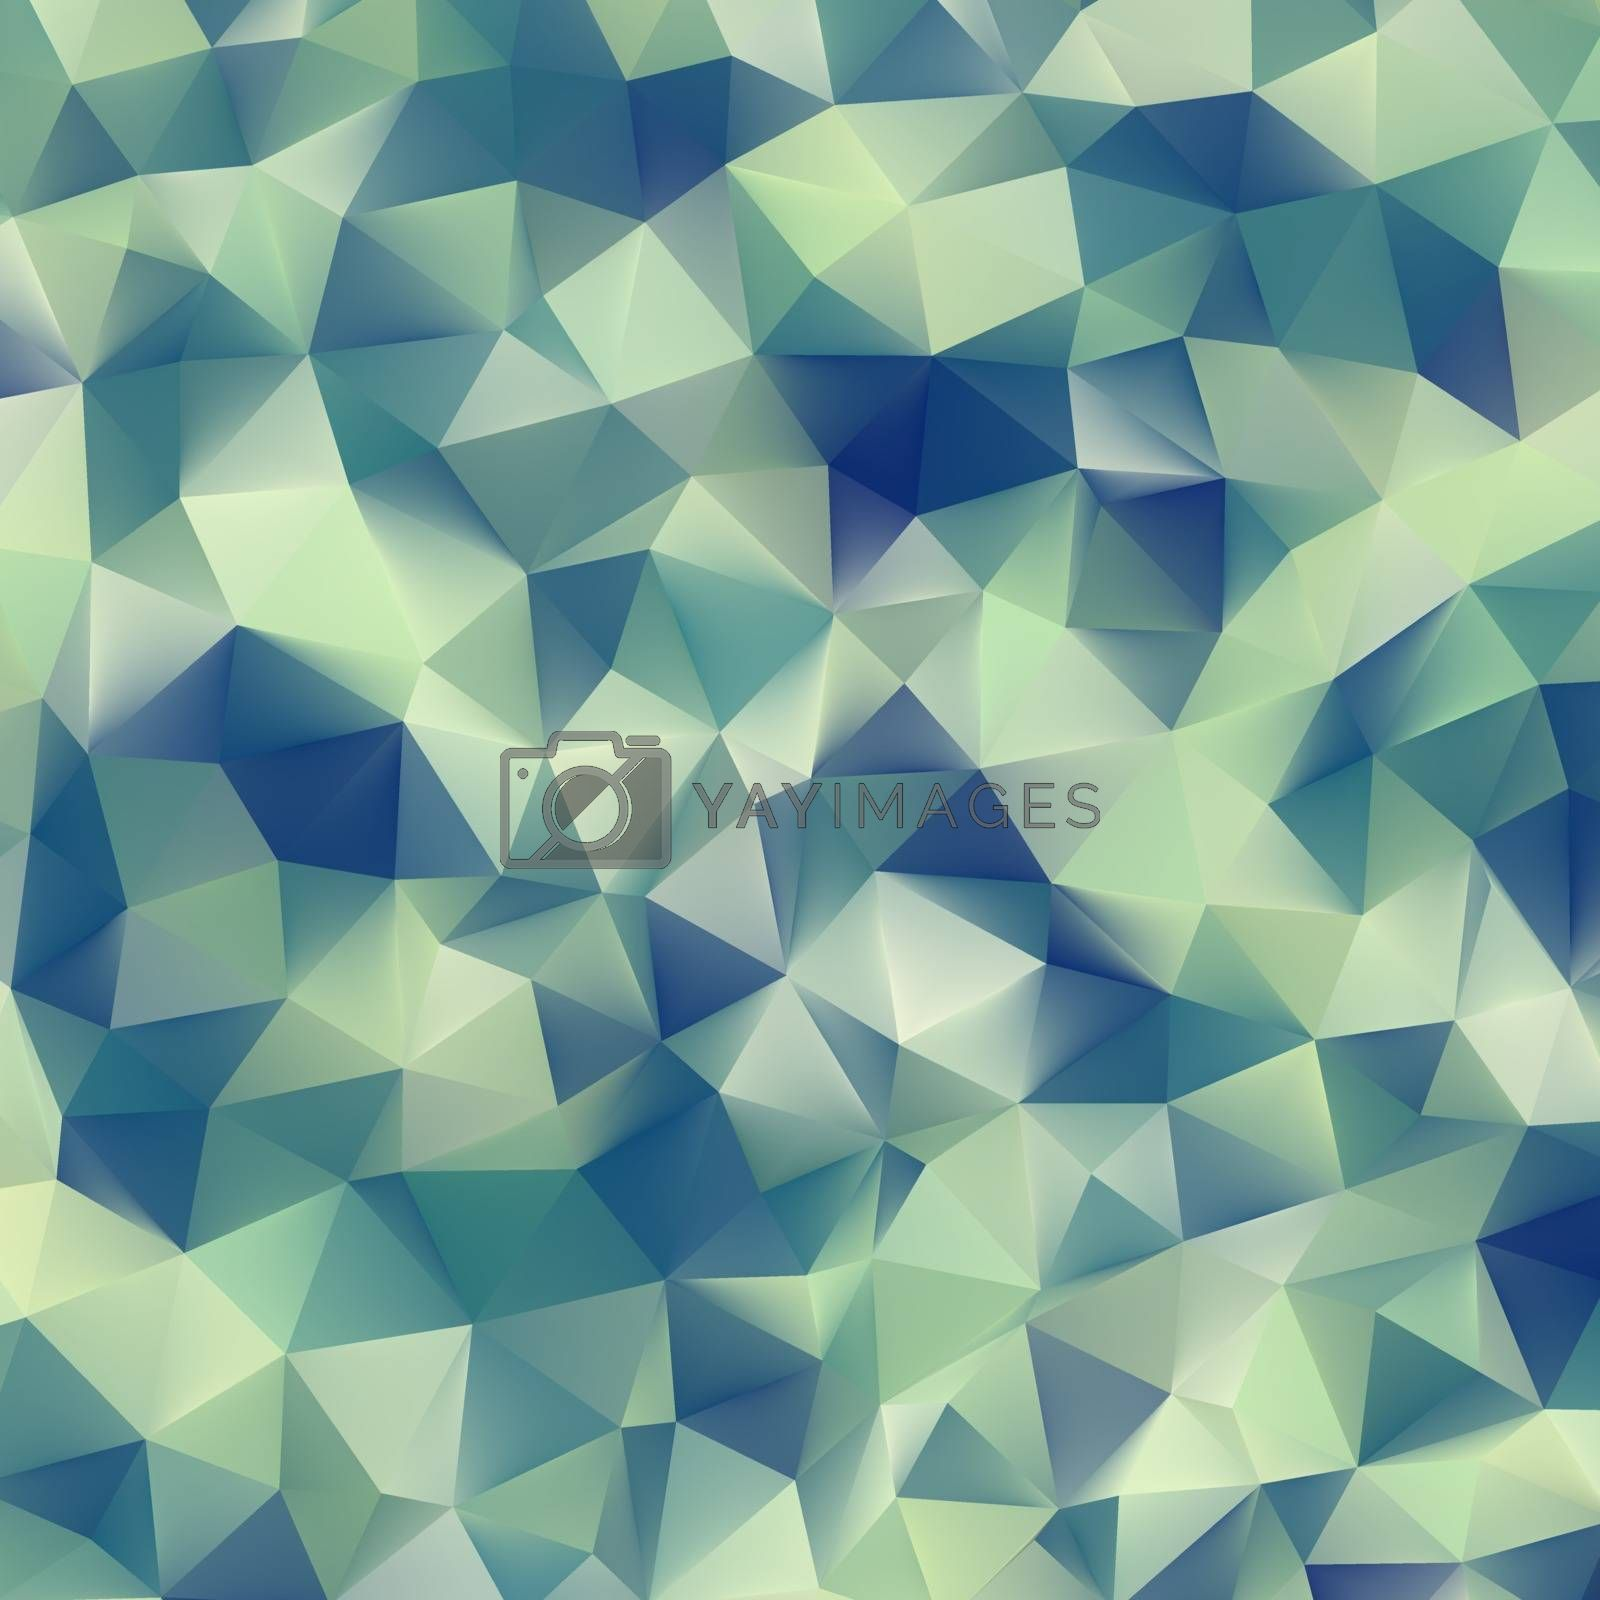 Abstract background background. EPS 8 vector file included